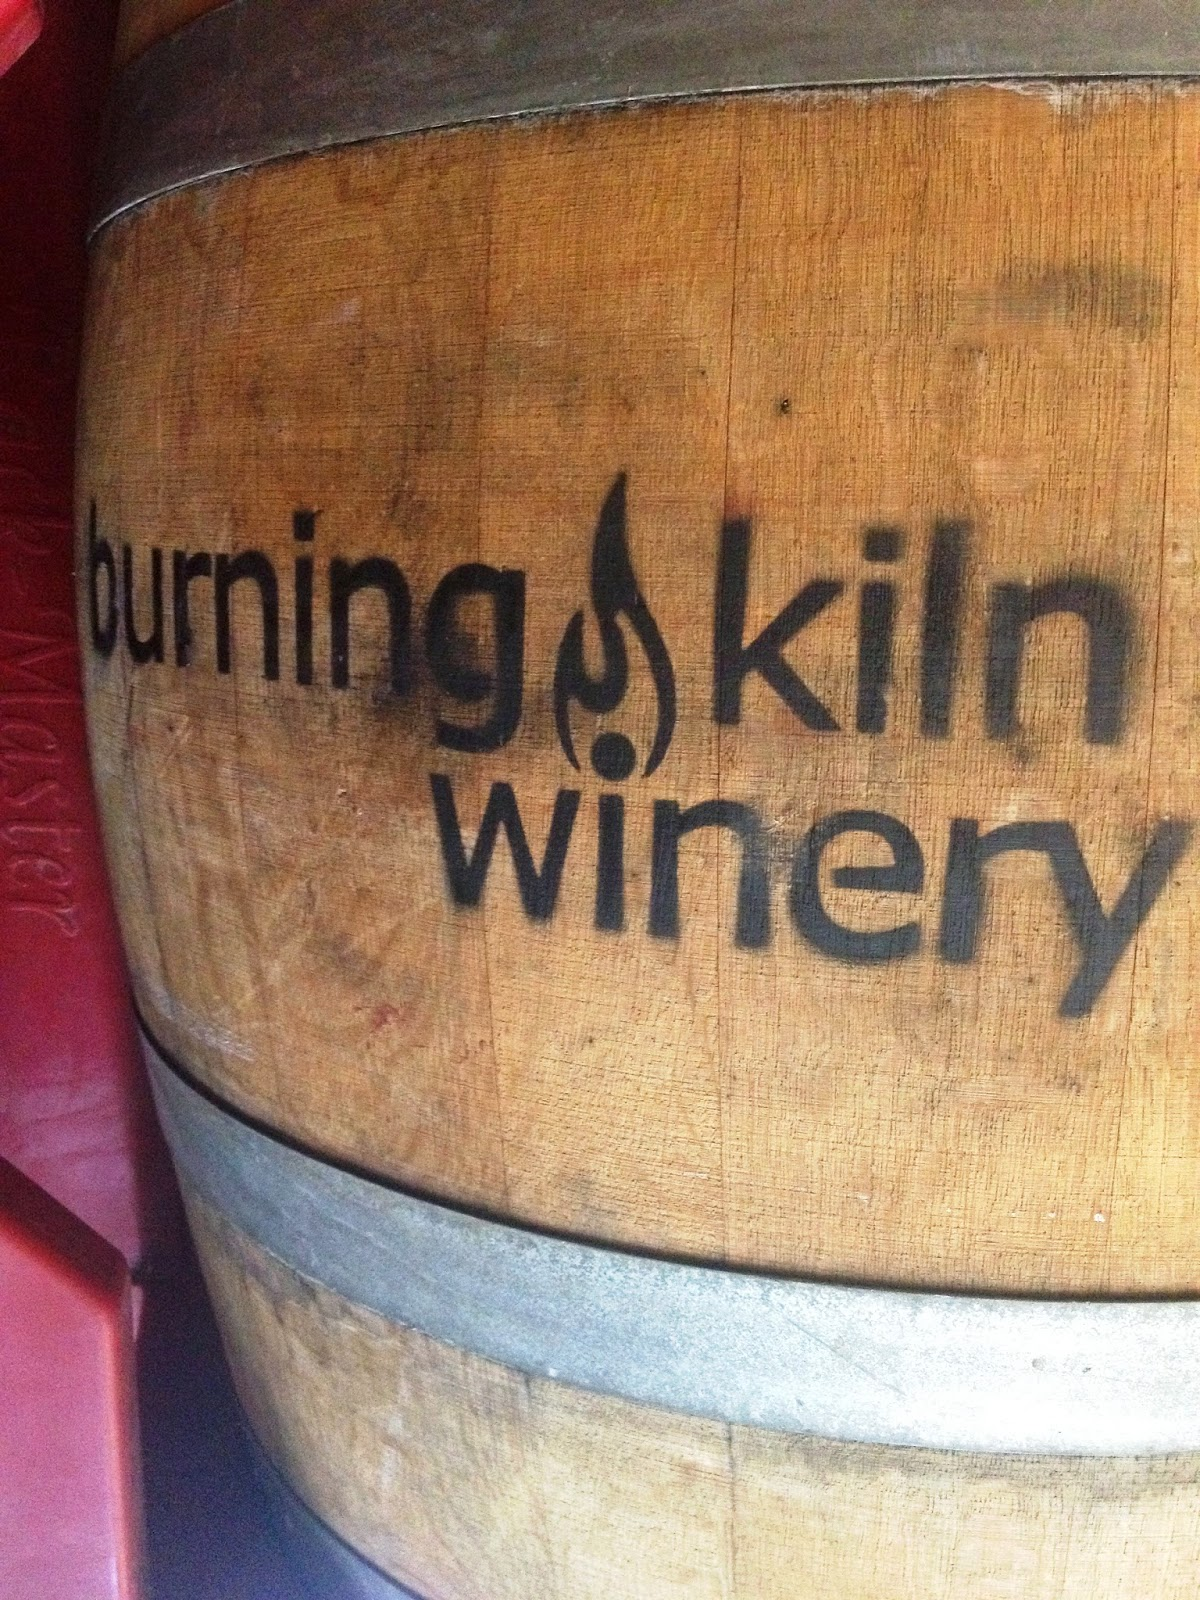 Barrel of Wine at Burning Kiln Winery